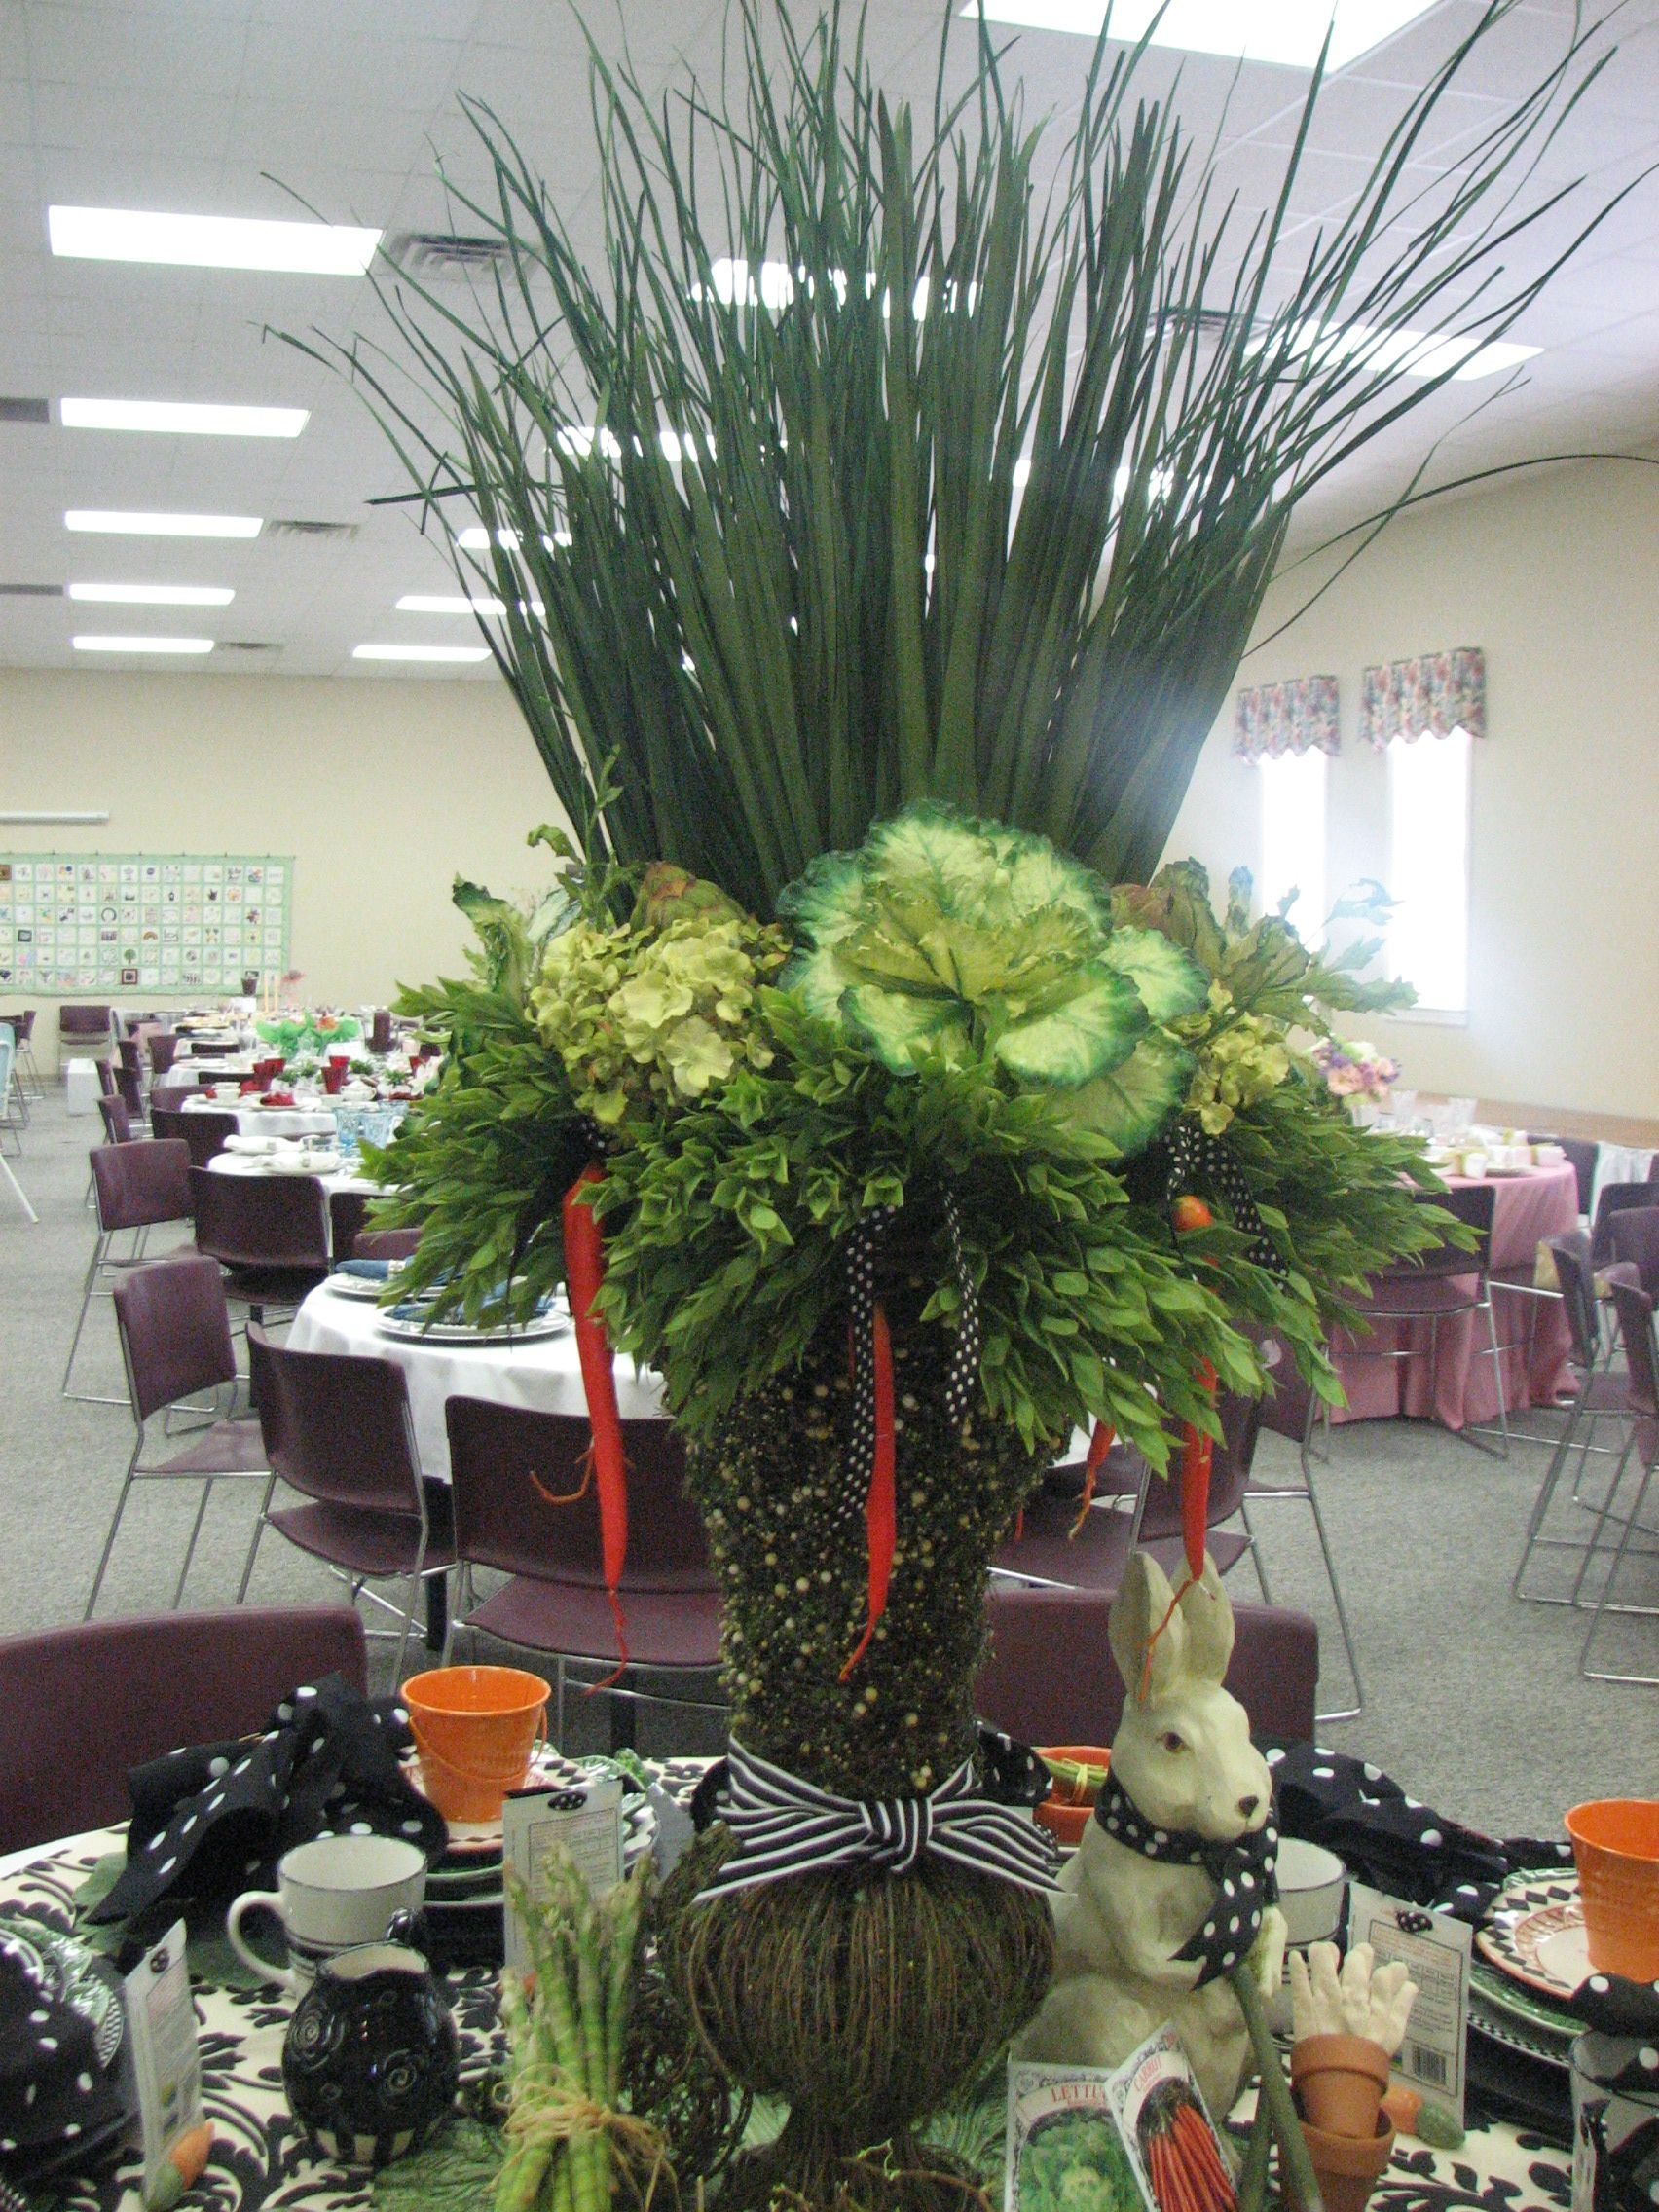 Table scape for Church LuncheonCarrot and Vegetable